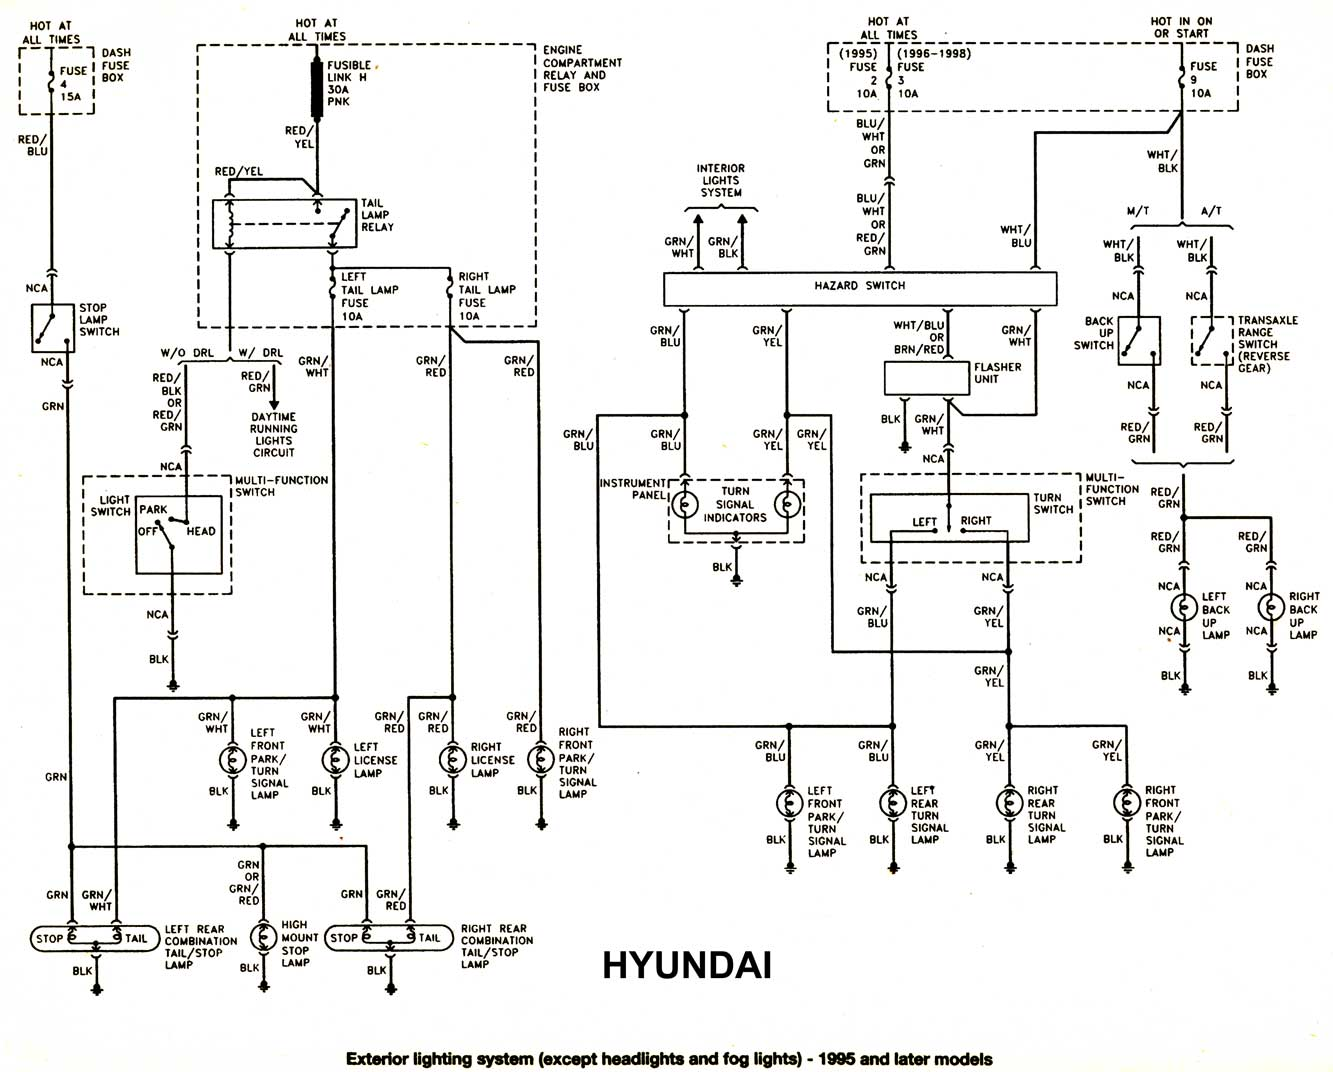 97 ford ranger radio wiring diagram 97 image 1988 ford ranger radio wiring diagram 1988 auto wiring diagram on 97 ford ranger radio wiring